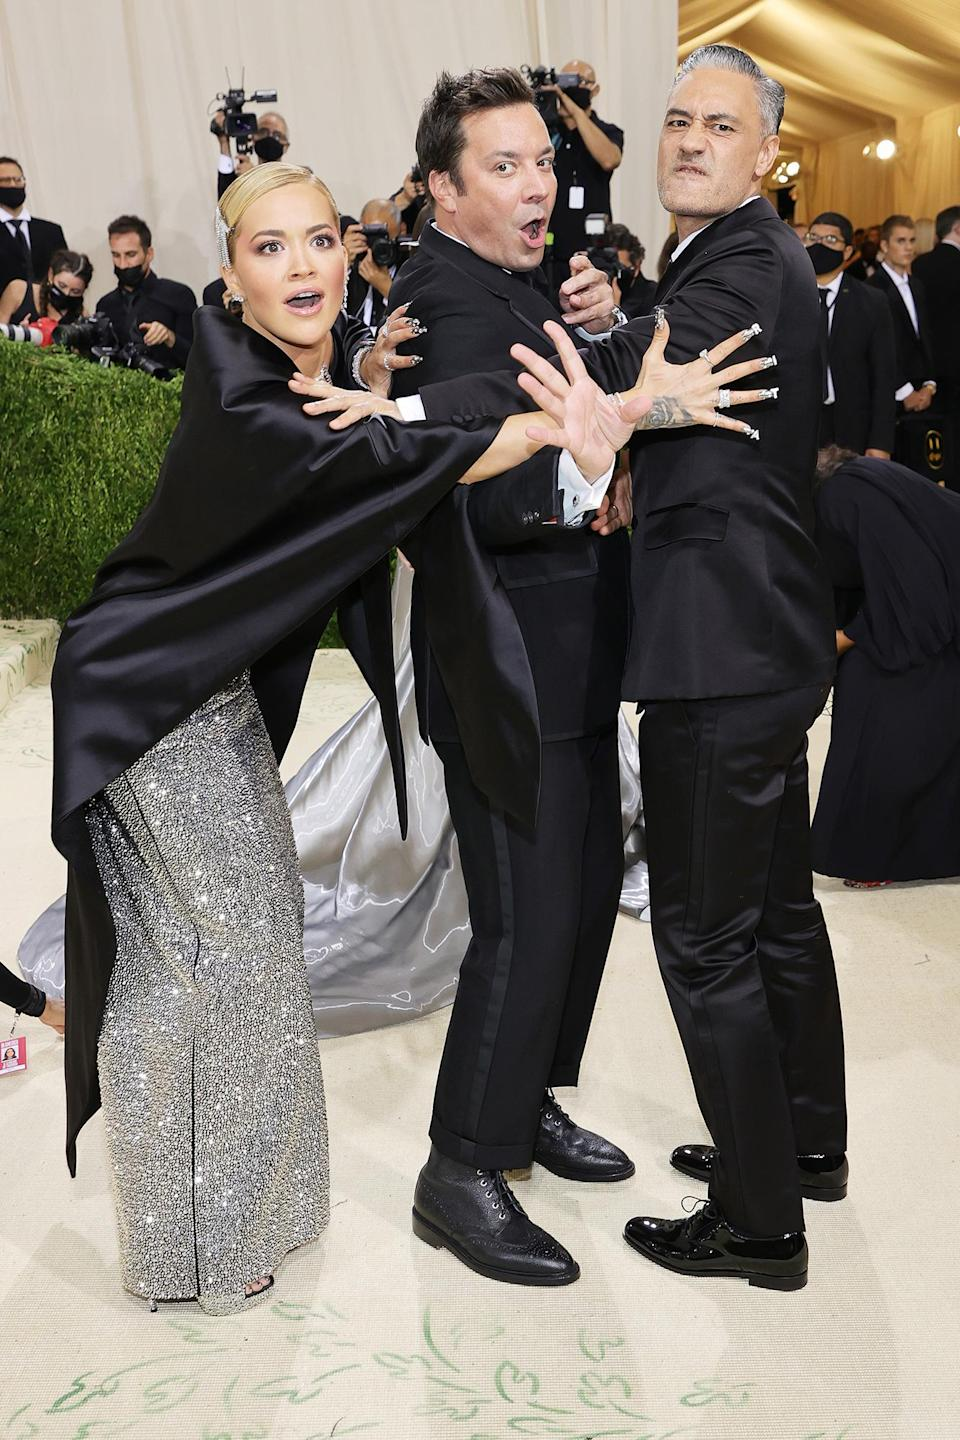 <p>Rita Ora, Jimmy Fallon and Taika Waititi bring the drama to the 2021 Met Gala, Celebrating in America: A Lexicon of Fashion, at the Metropolitan Museum of Art on Sept. 13 in N.Y.C.</p>